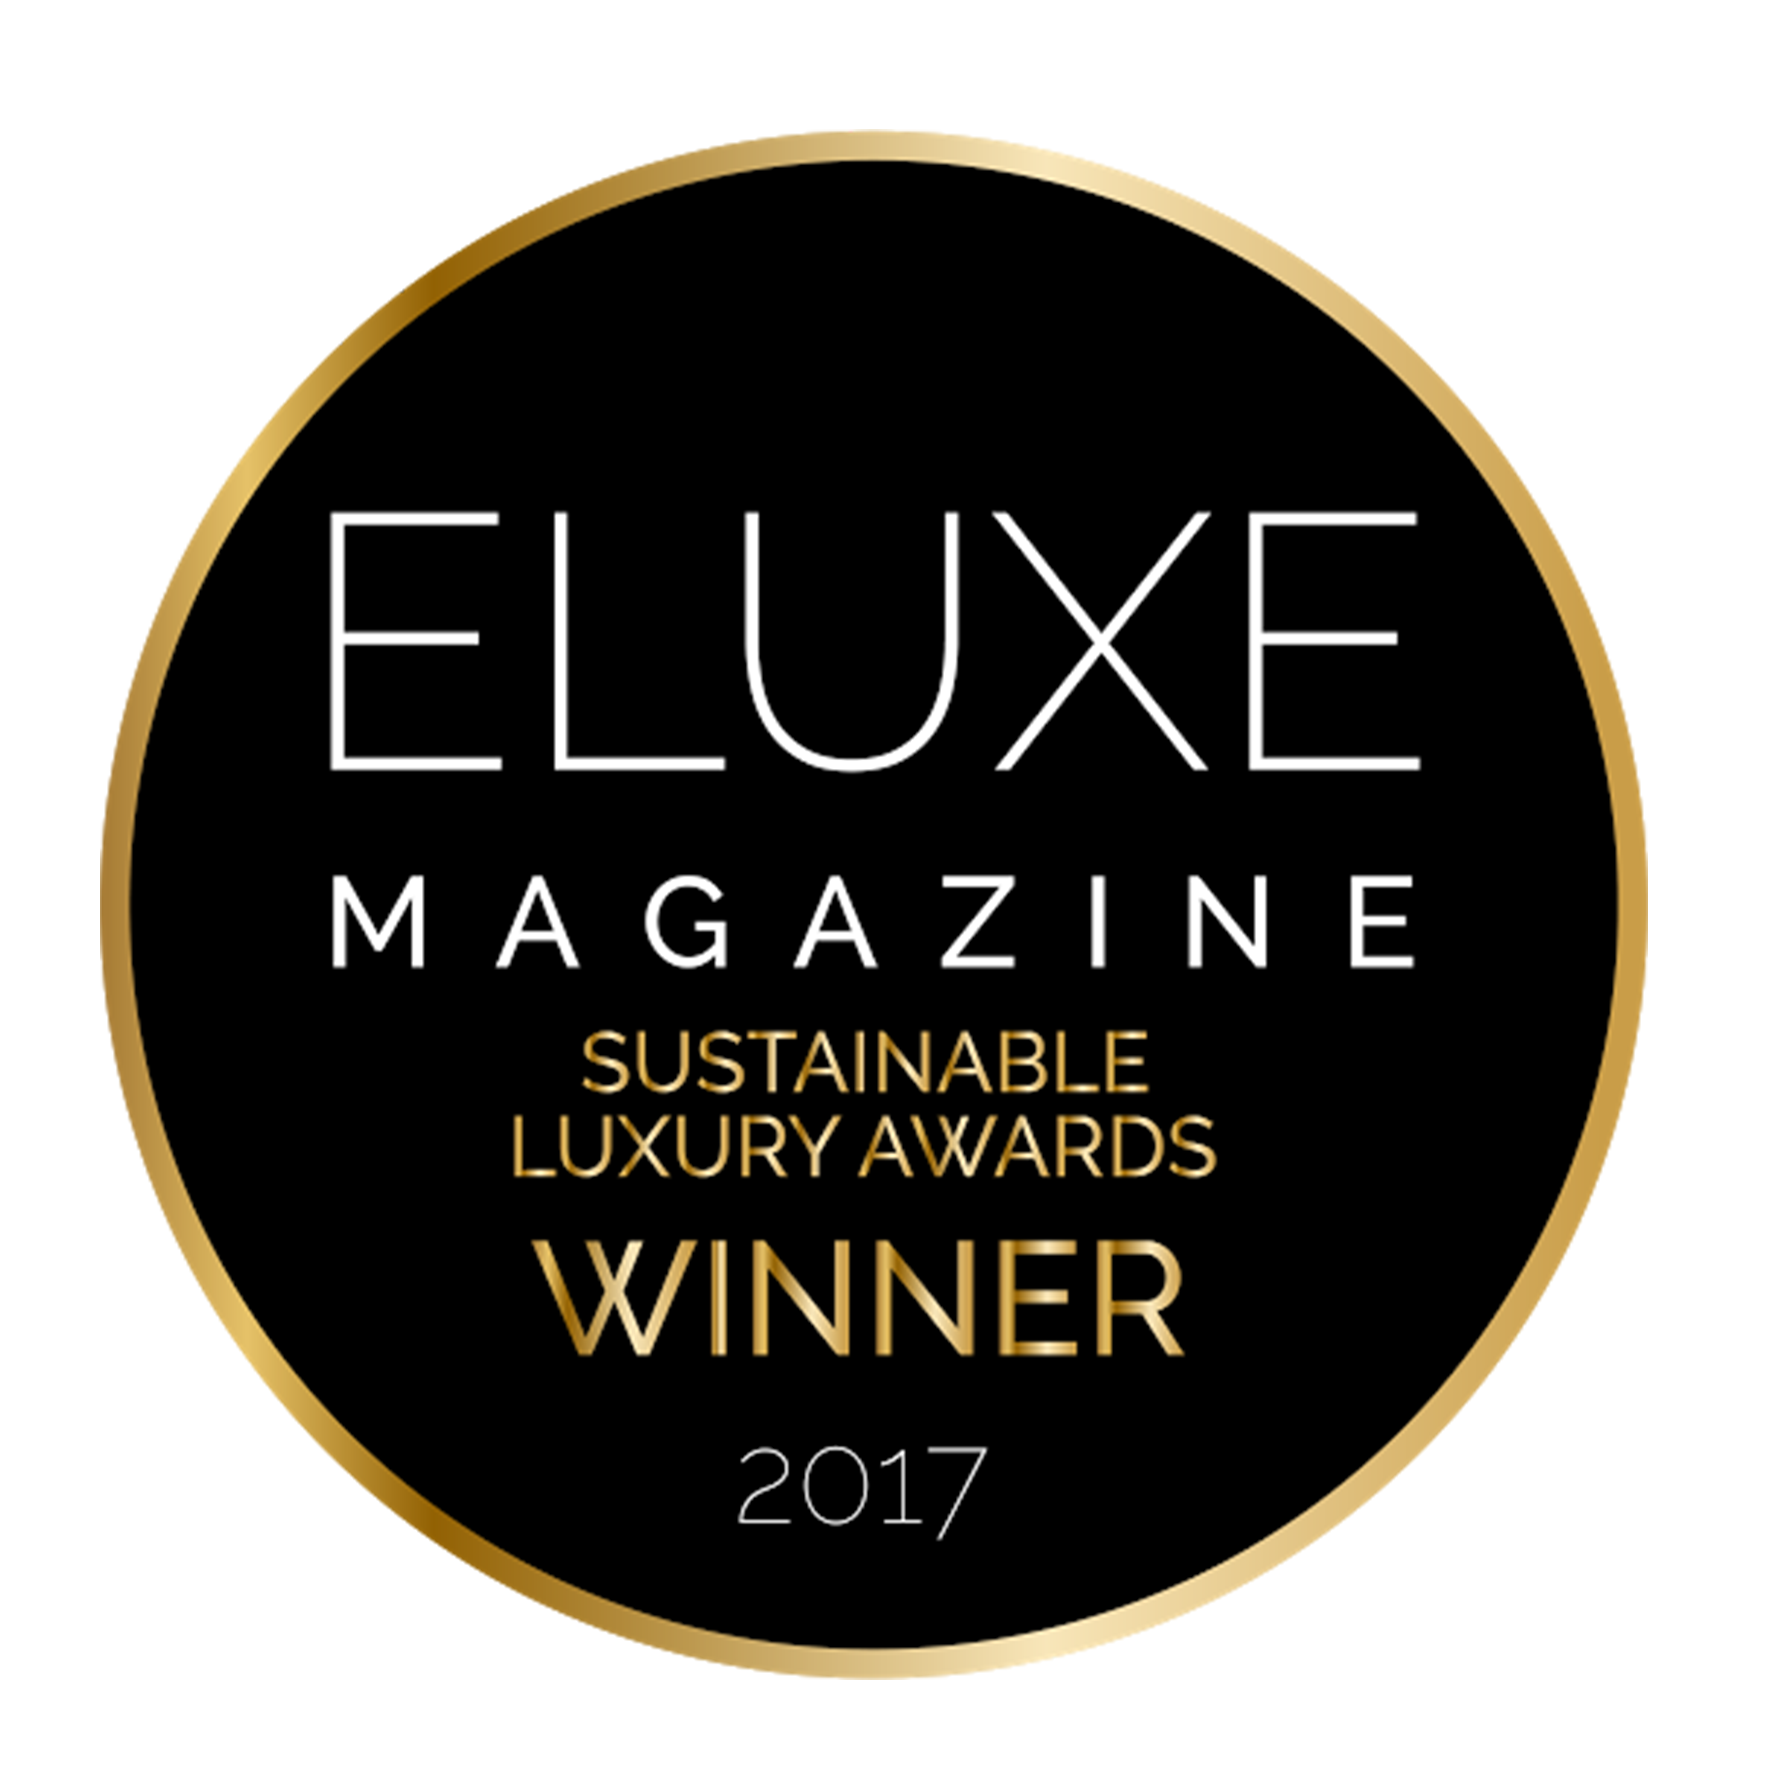 ELUXE Magazine - Sustainable Luxury Awards 2017